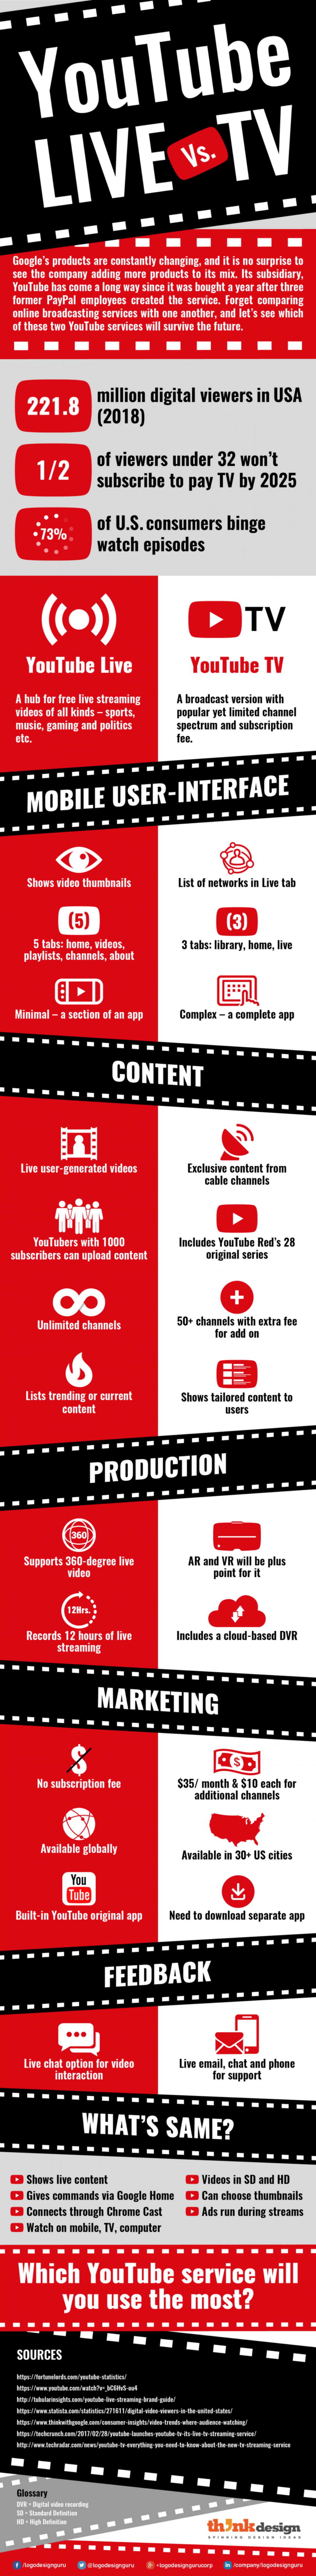 YouTube Live Vs. YouTube TV Infographic